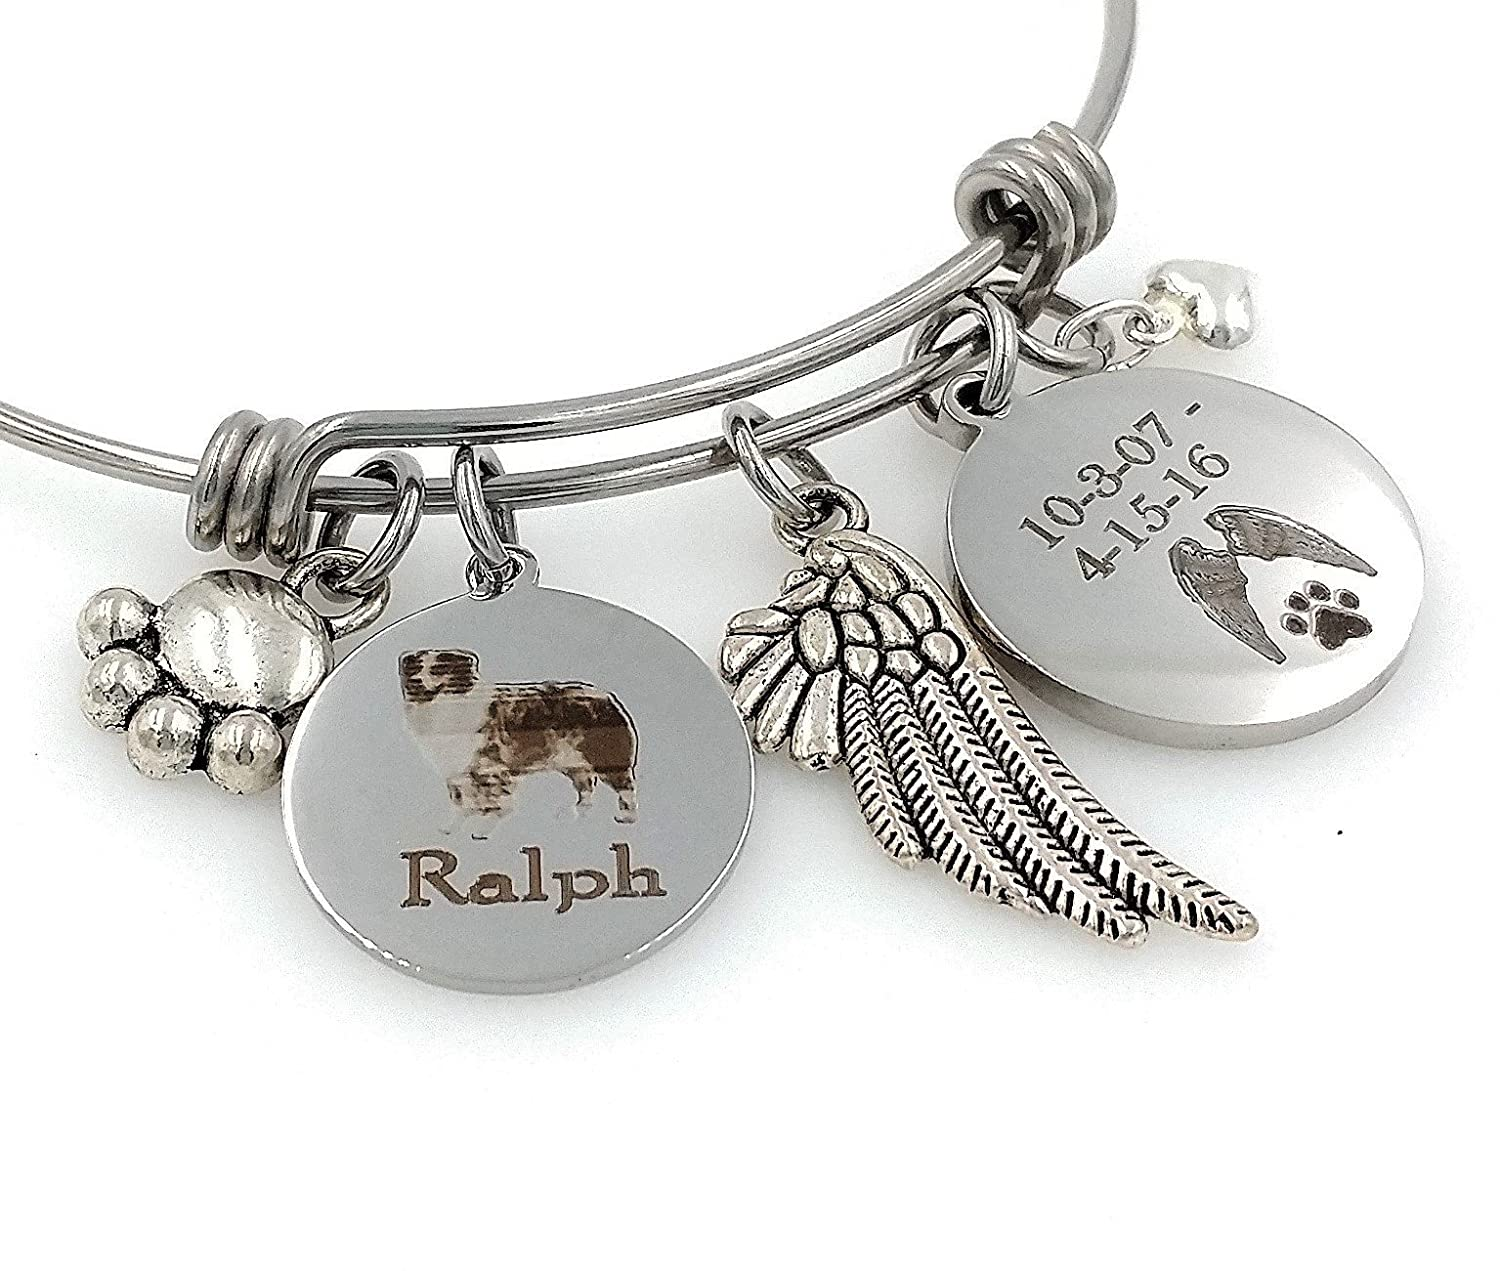 Australian Shepherd Rainbow Bridge Aussie Personalized Memorial Remembrance Bangle Bracelet or Necklace Engraved